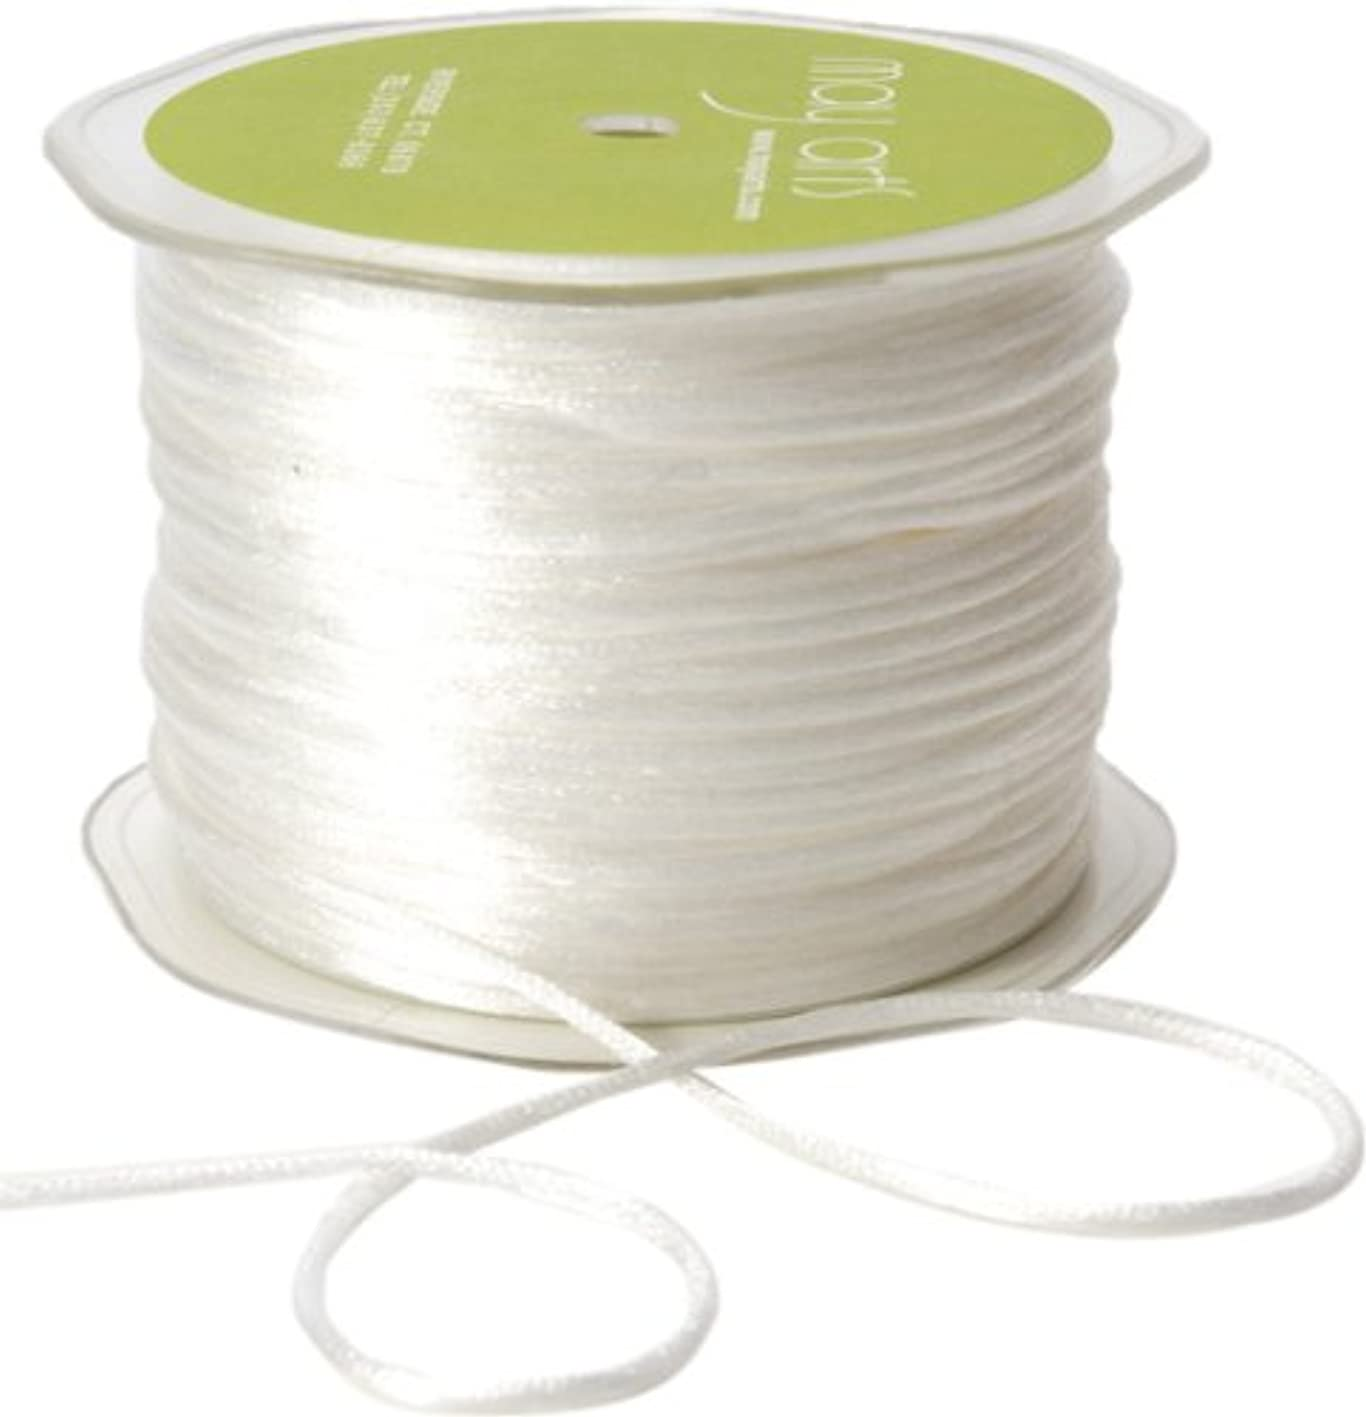 May Arts Ribbon, White Satin String mujjvvztmnl370